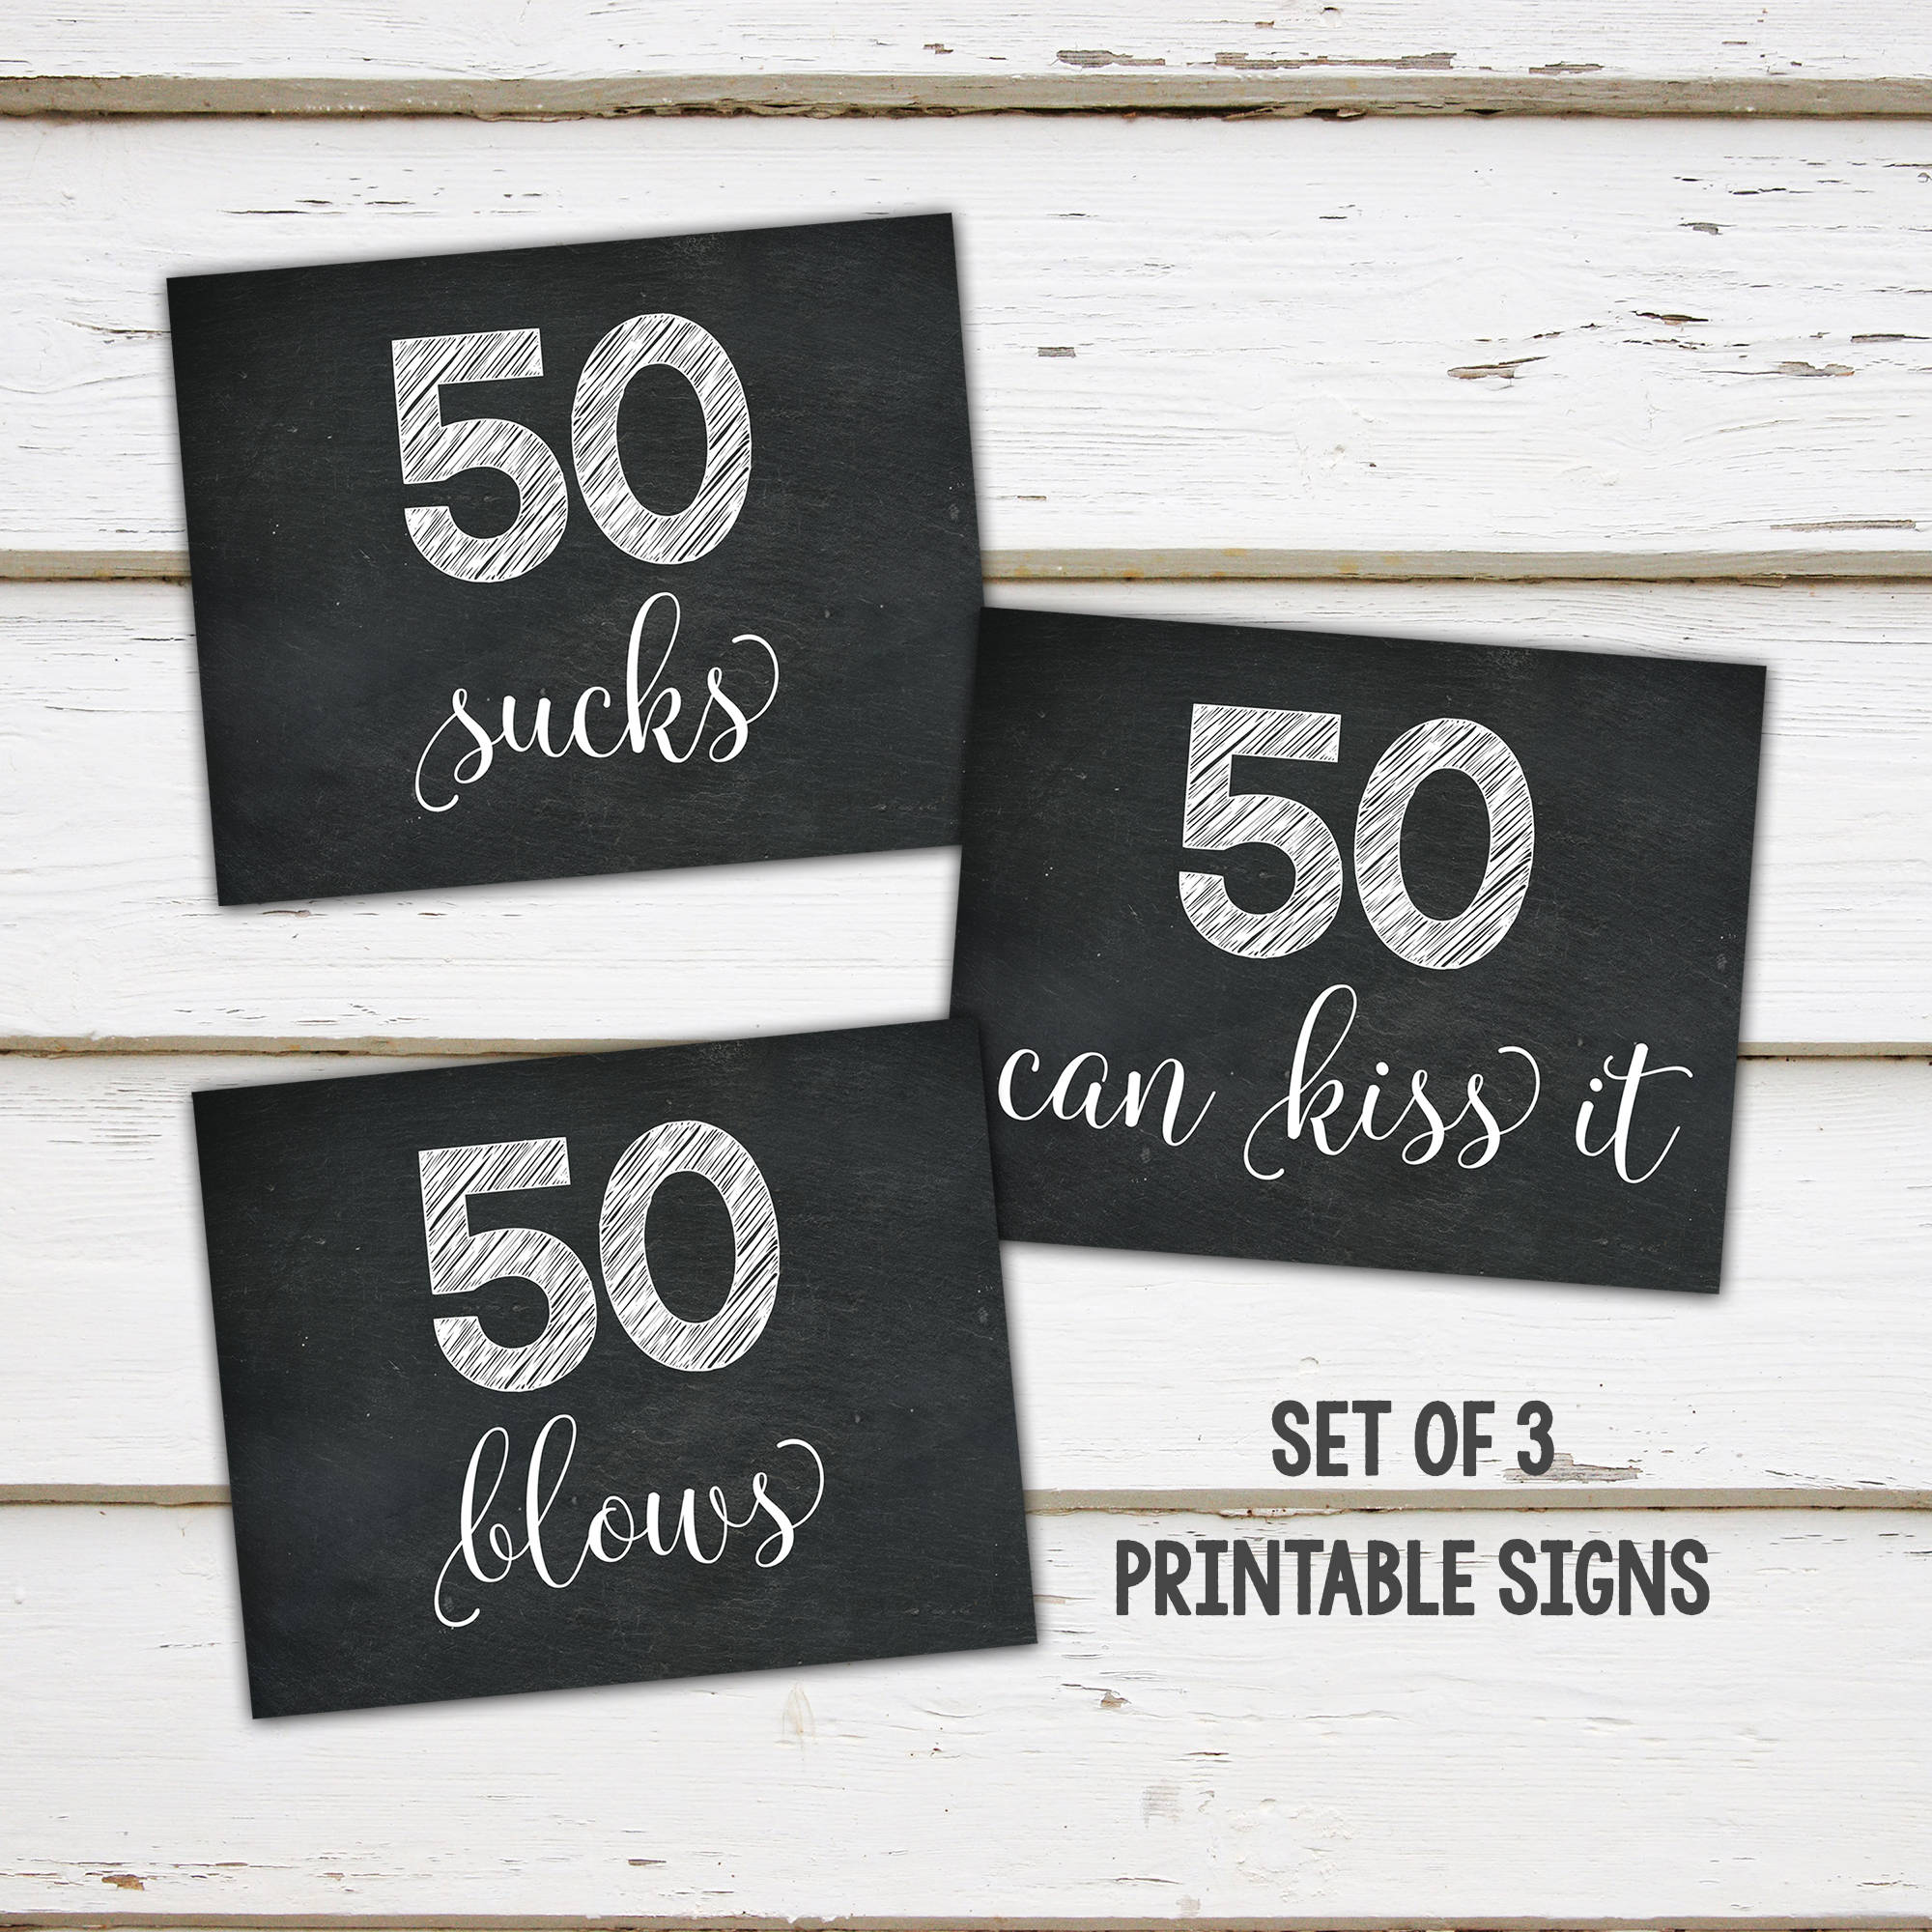 photograph relating to 50th Birthday Signs Printable identified as Printable 50th Birthday Get together Decor Signs and symptoms, 50 Sucks, 50 Blows, 50 Can Kiss It, Sweet Bar, Fast, Chalkboard Signs or symptoms, Humorous, Above Hill, MB284